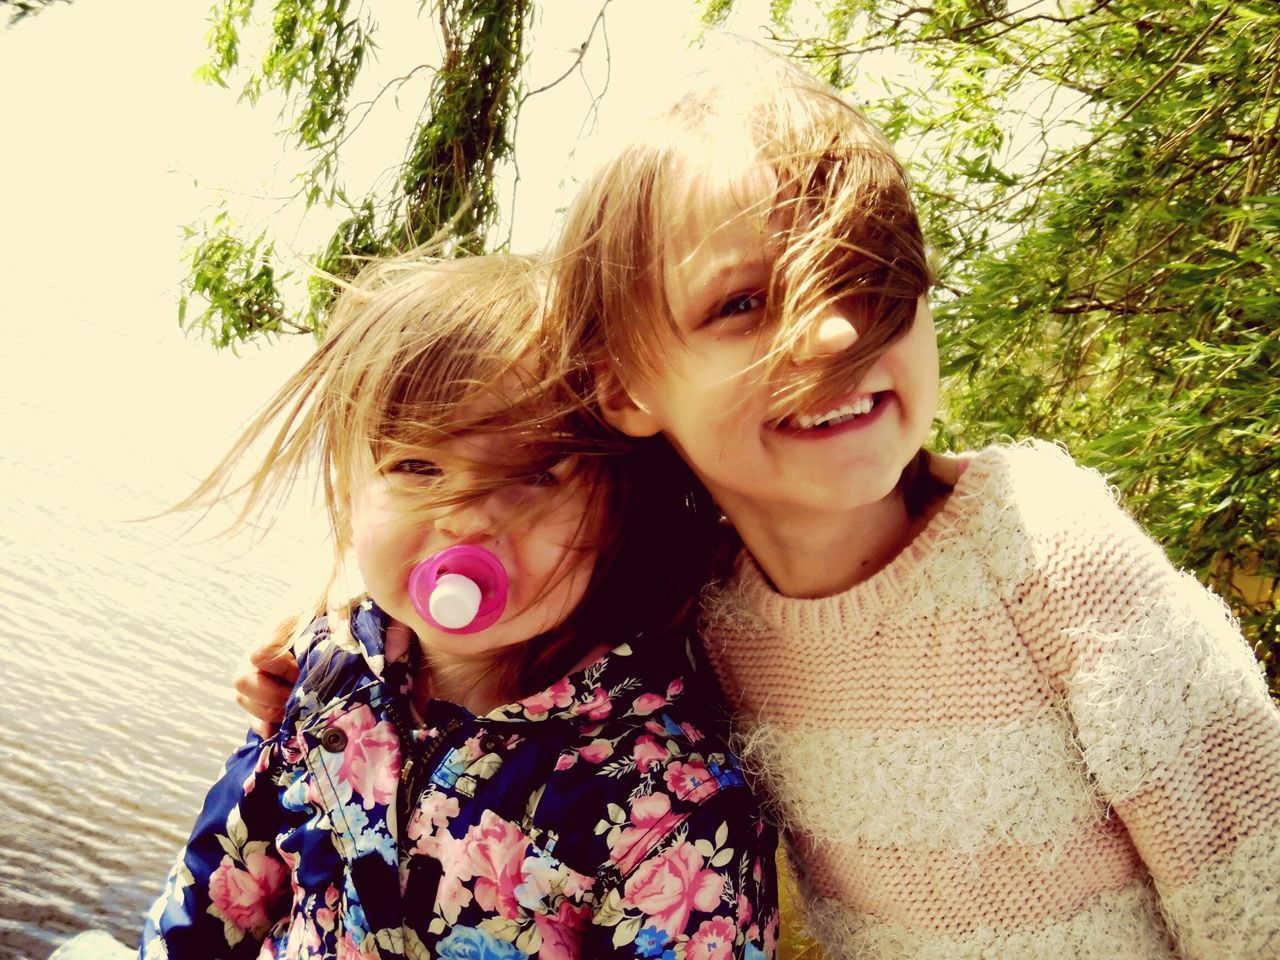 two people, emotion, real people, child, childhood, women, portrait, togetherness, girls, bonding, smiling, happiness, front view, females, lifestyles, family, love, leisure activity, positive emotion, hair, outdoors, innocence, warm clothing, sister, hairstyle